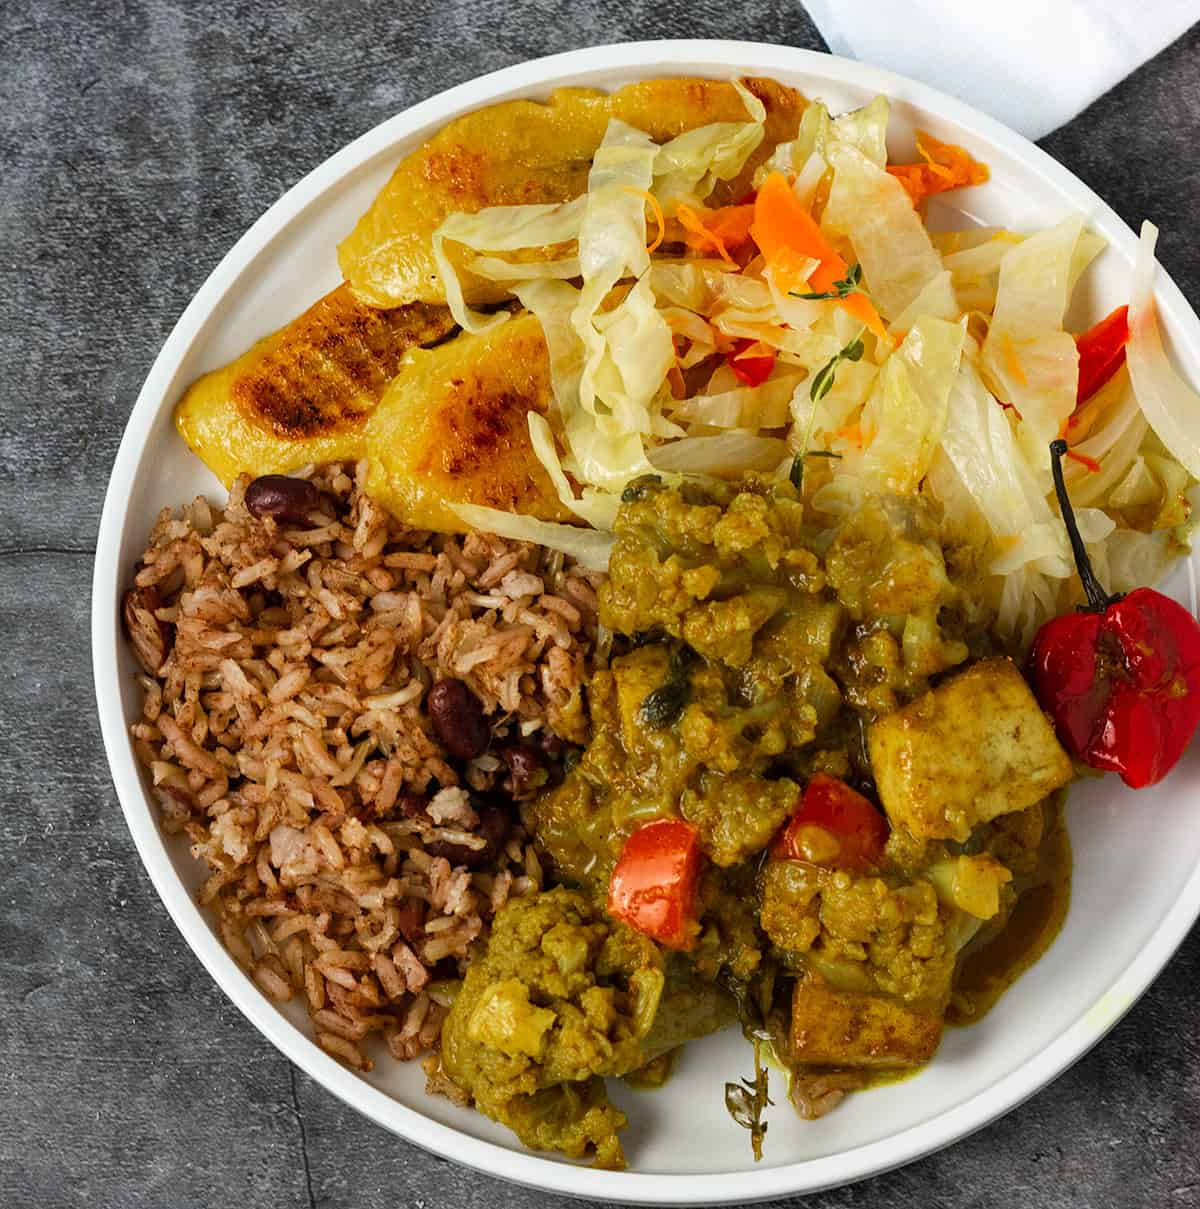 curry, rice, cabbage, and plantains on a white plate